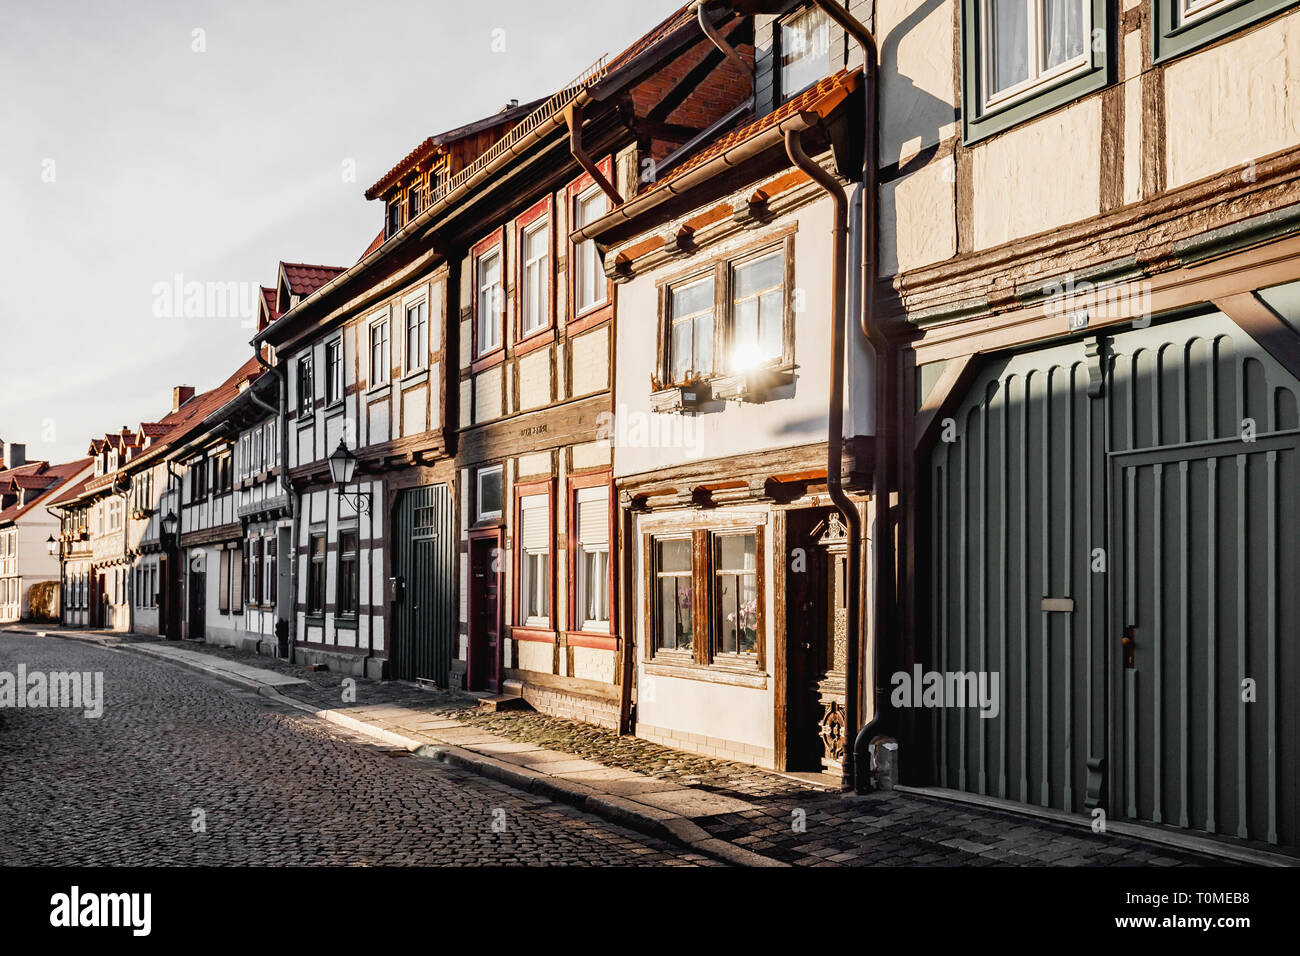 Half-timbered houses in Wernigerode in the Harz Mountains, Saxony-Anhalt, Germany Stock Photo